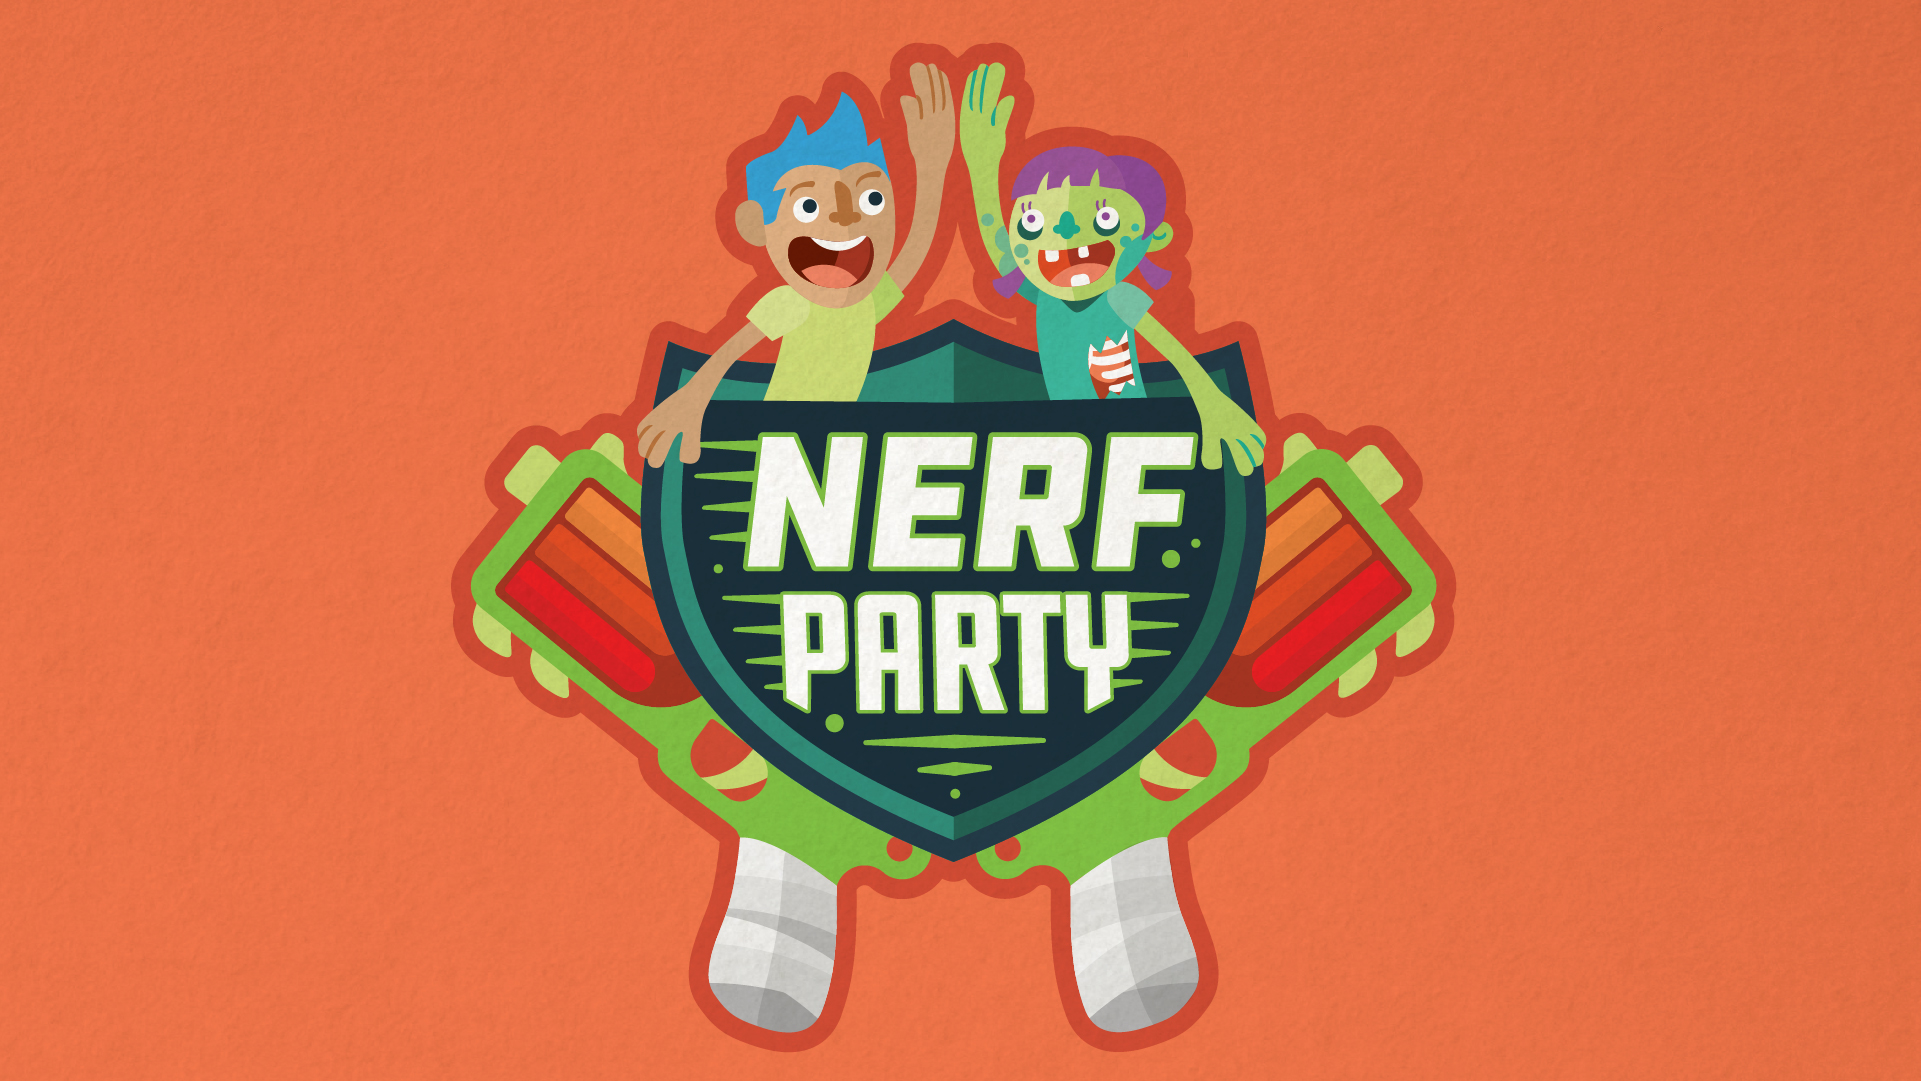 graphic relating to Nerf Logo Printable named Celebration Invites - Parkour, NERF, and Ninja Warrior